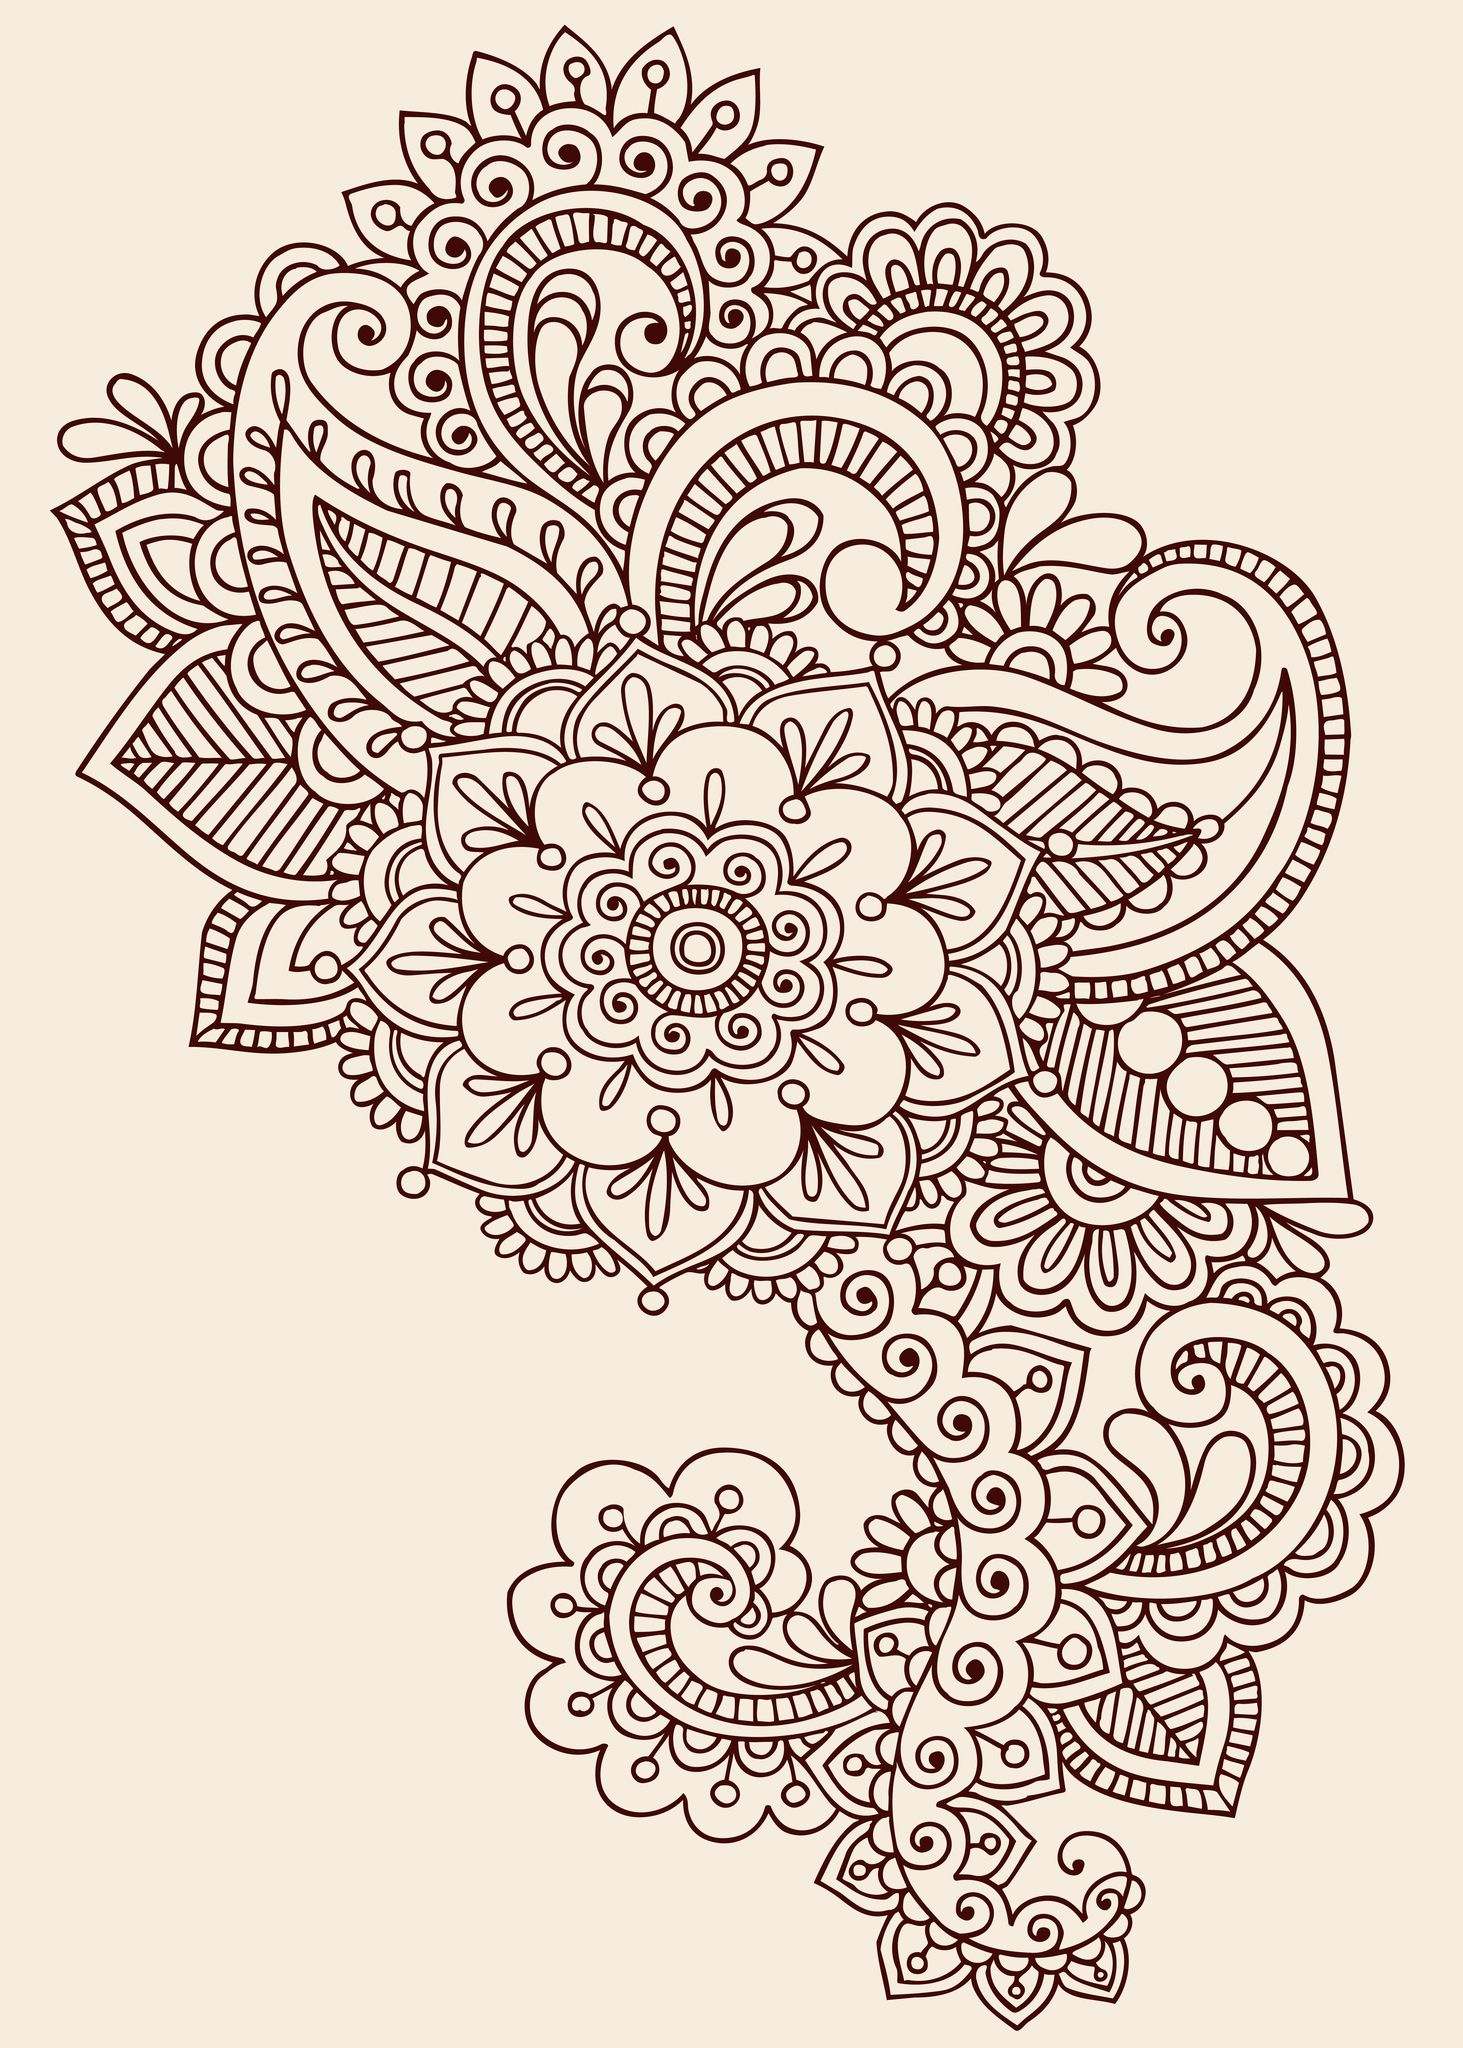 paisley designs paisley henna tattoo design tattoos pinterest henna tattoo designs. Black Bedroom Furniture Sets. Home Design Ideas